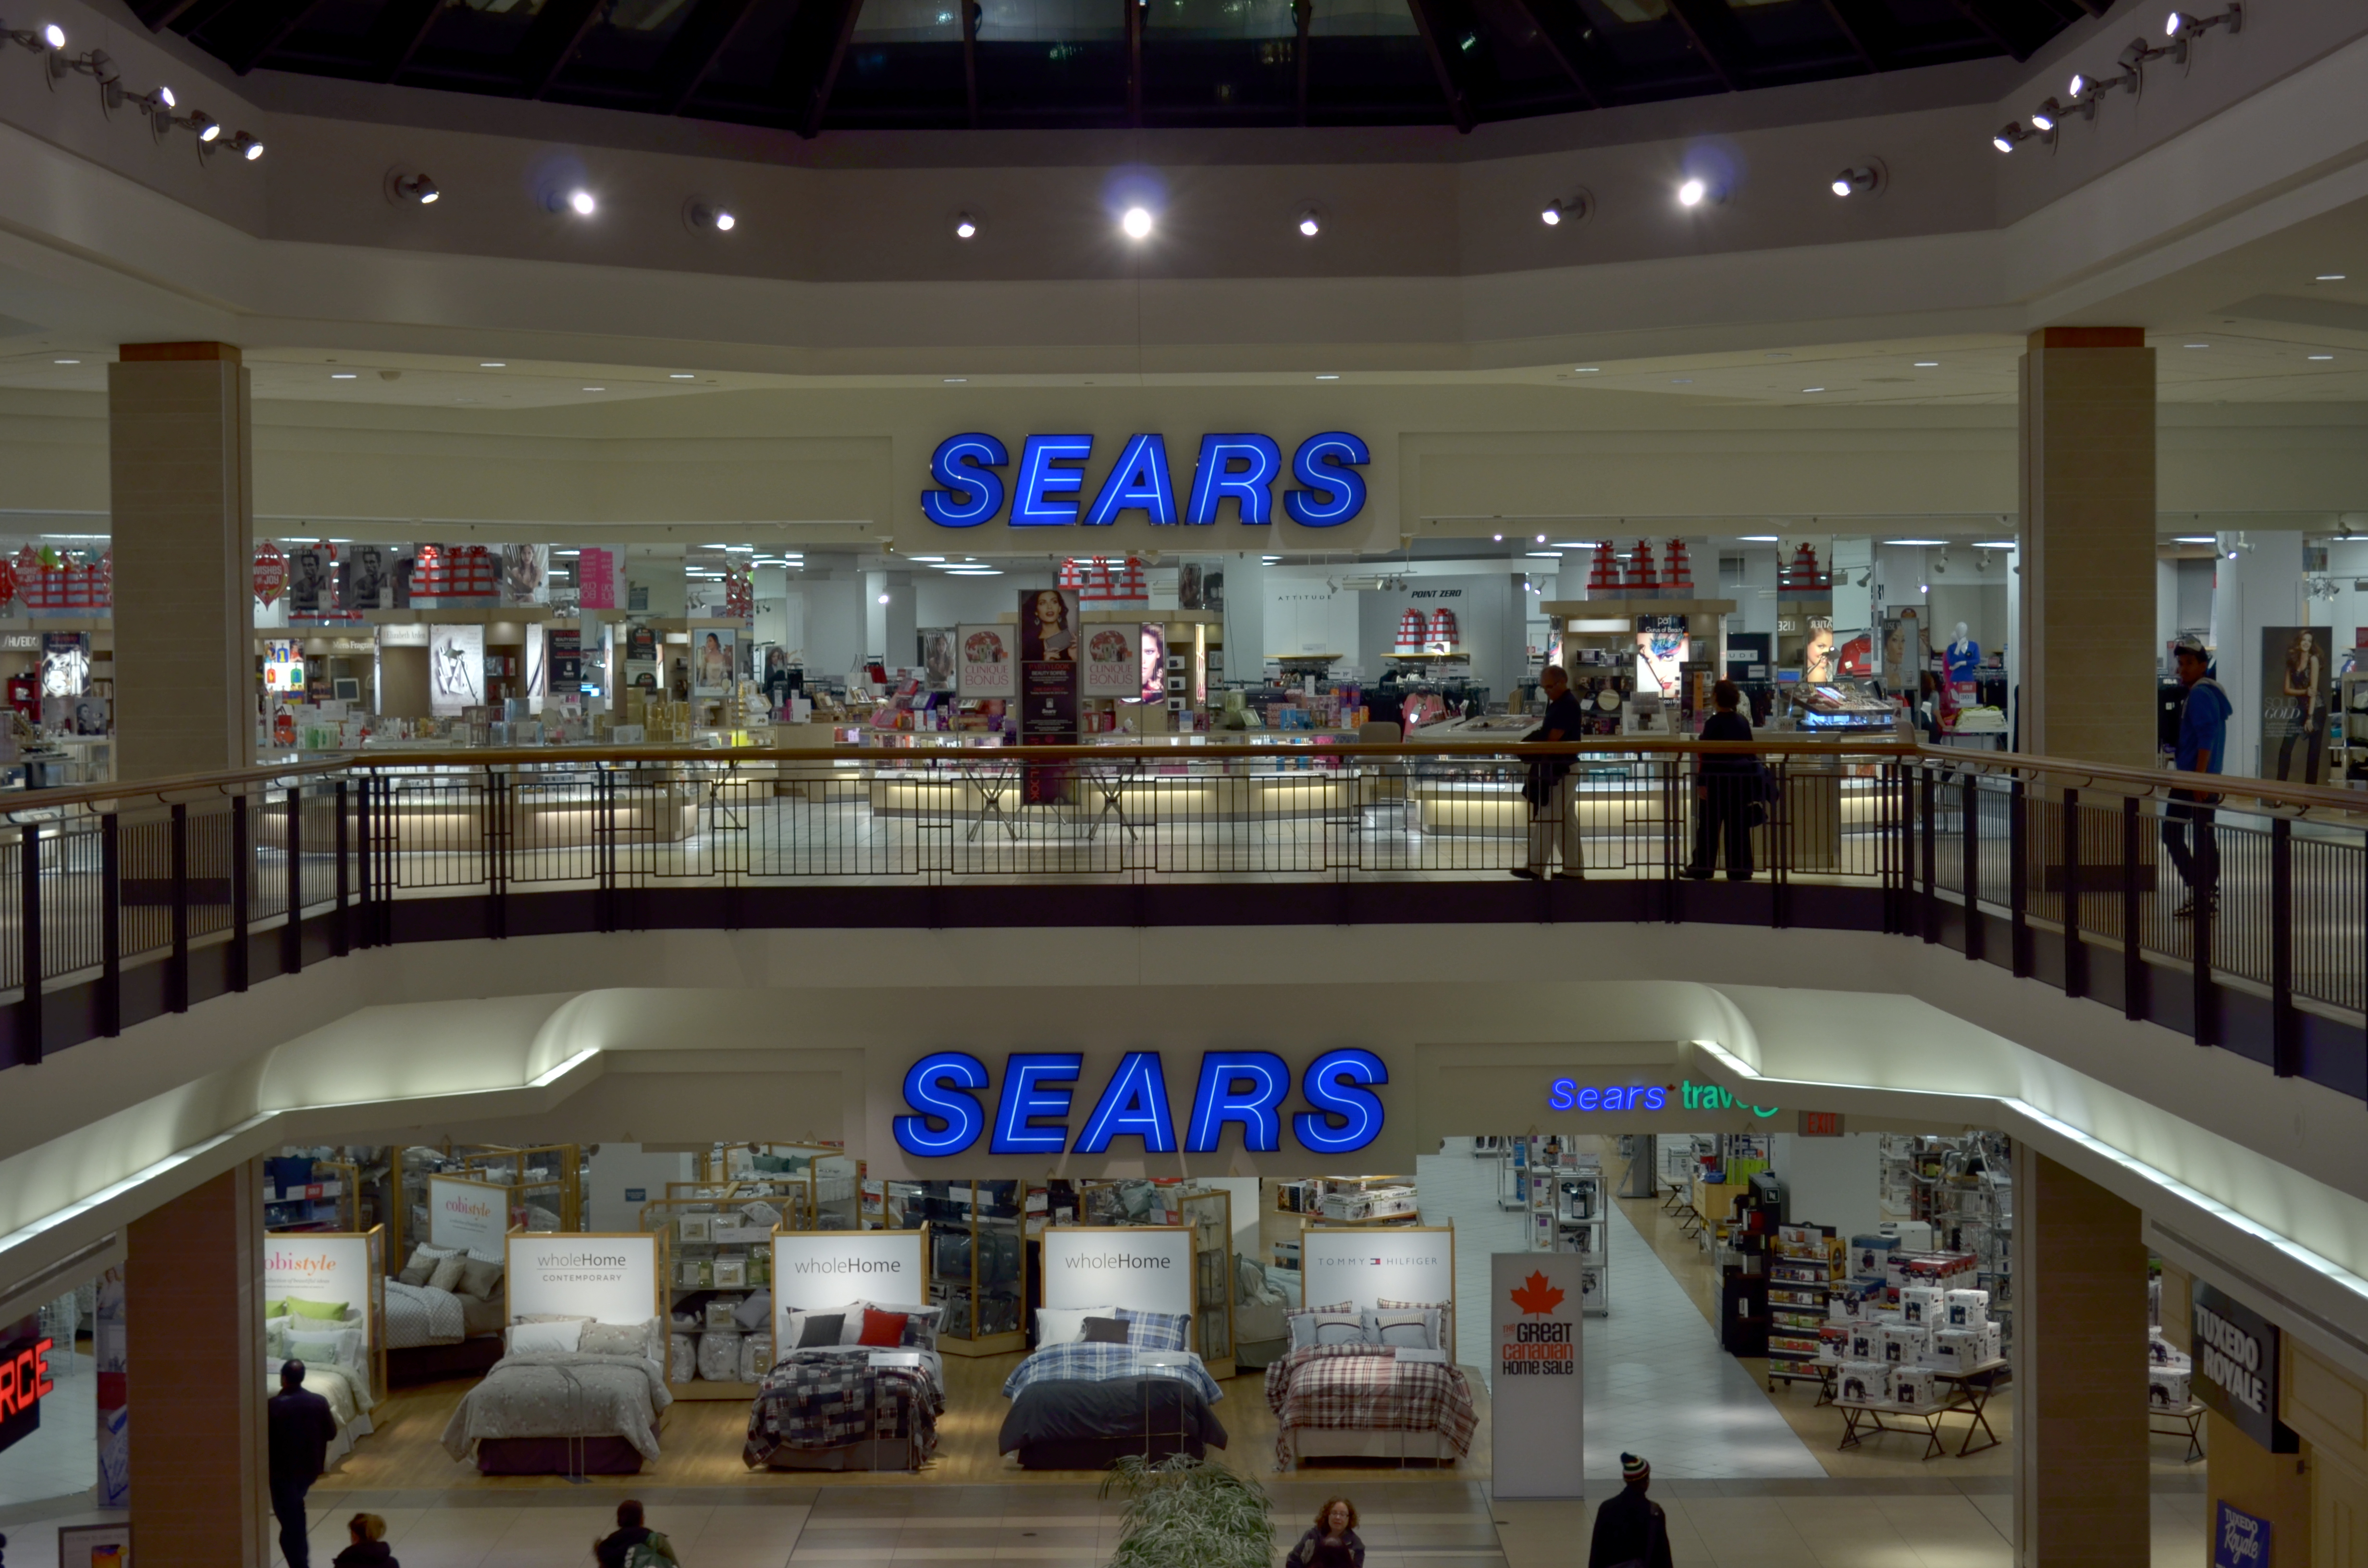 Sears Roebuck and Company colloquially known as Sears is an American chain of department stores founded by Richard Warren Sears and Alvah Curtis Roebuck in 1892